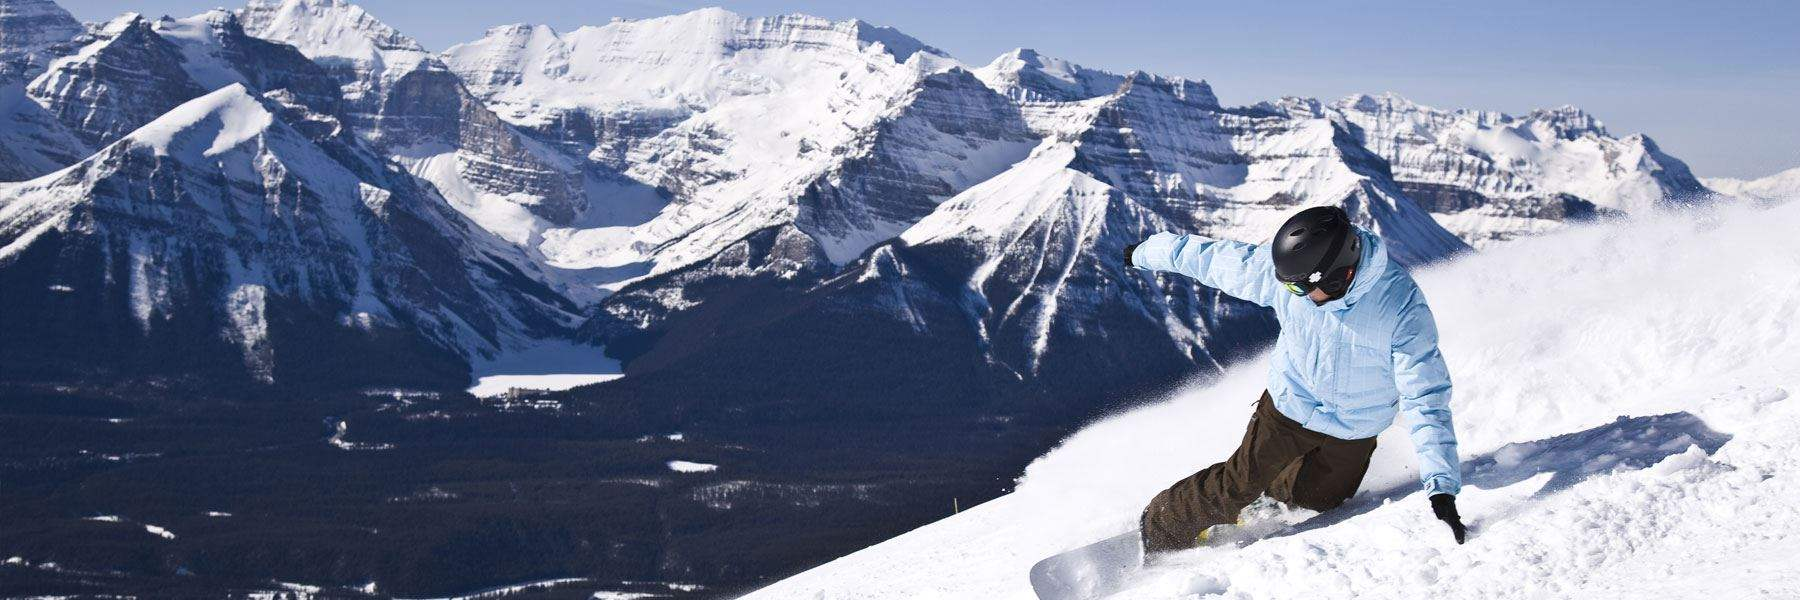 Banff / Lake Louise / Sunshine, Alberta: Get your 5th Night Free at Douglas Fir Resort!